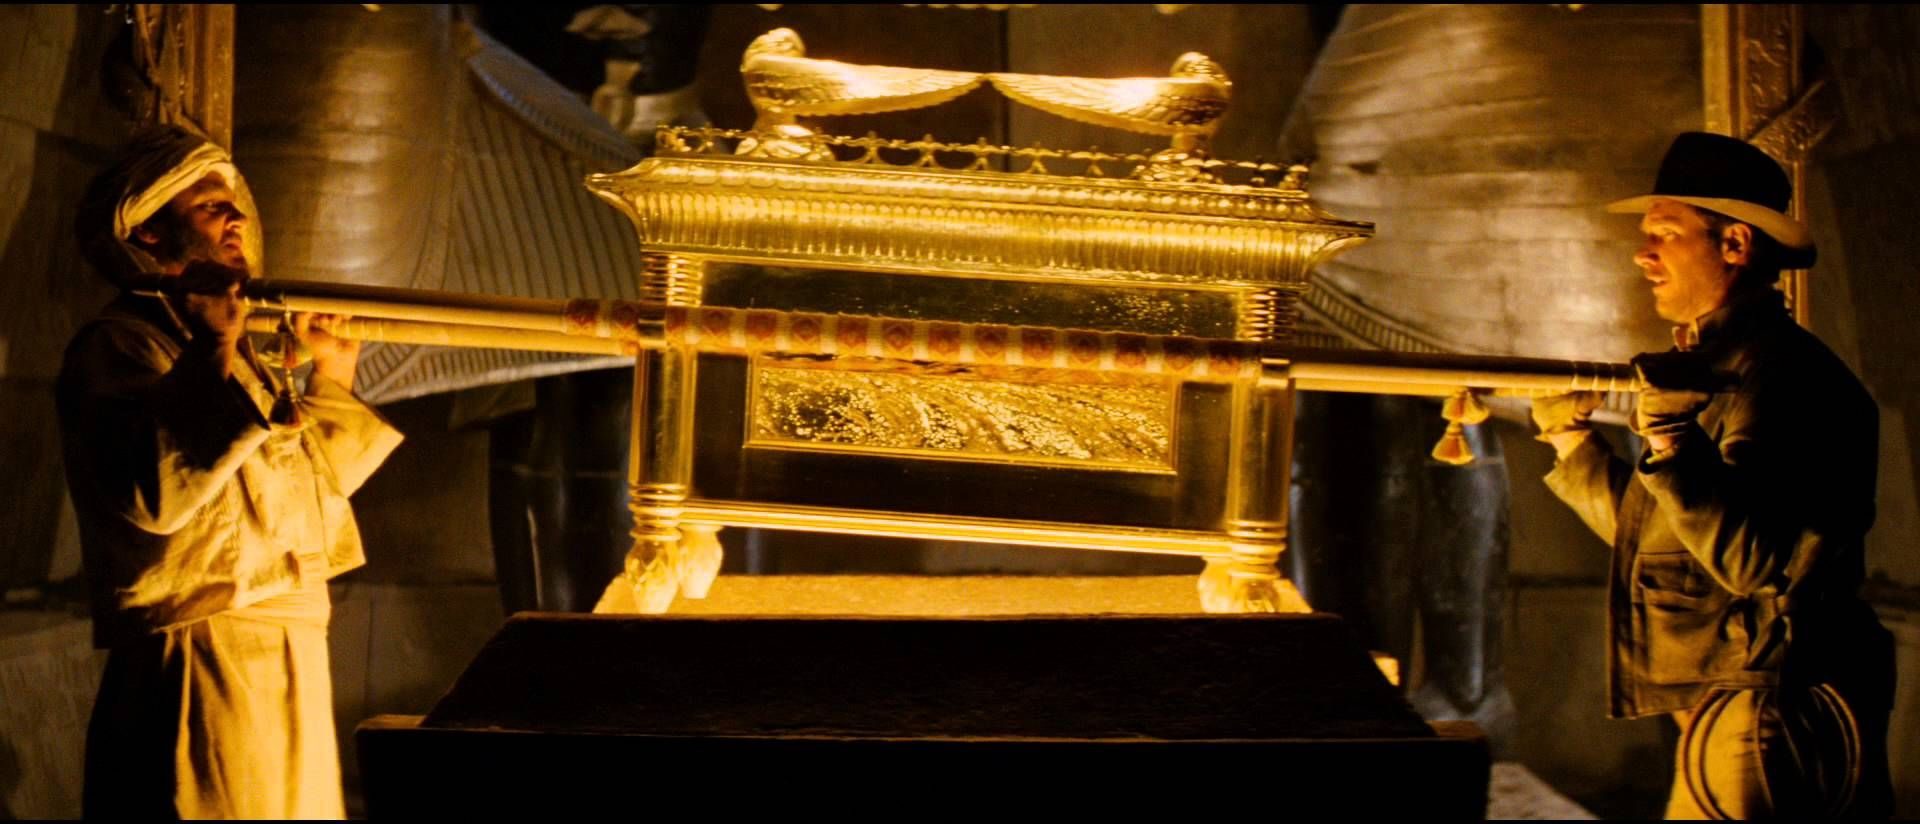 The ark of the covenant, Raiders of the Lost Ark (1981)